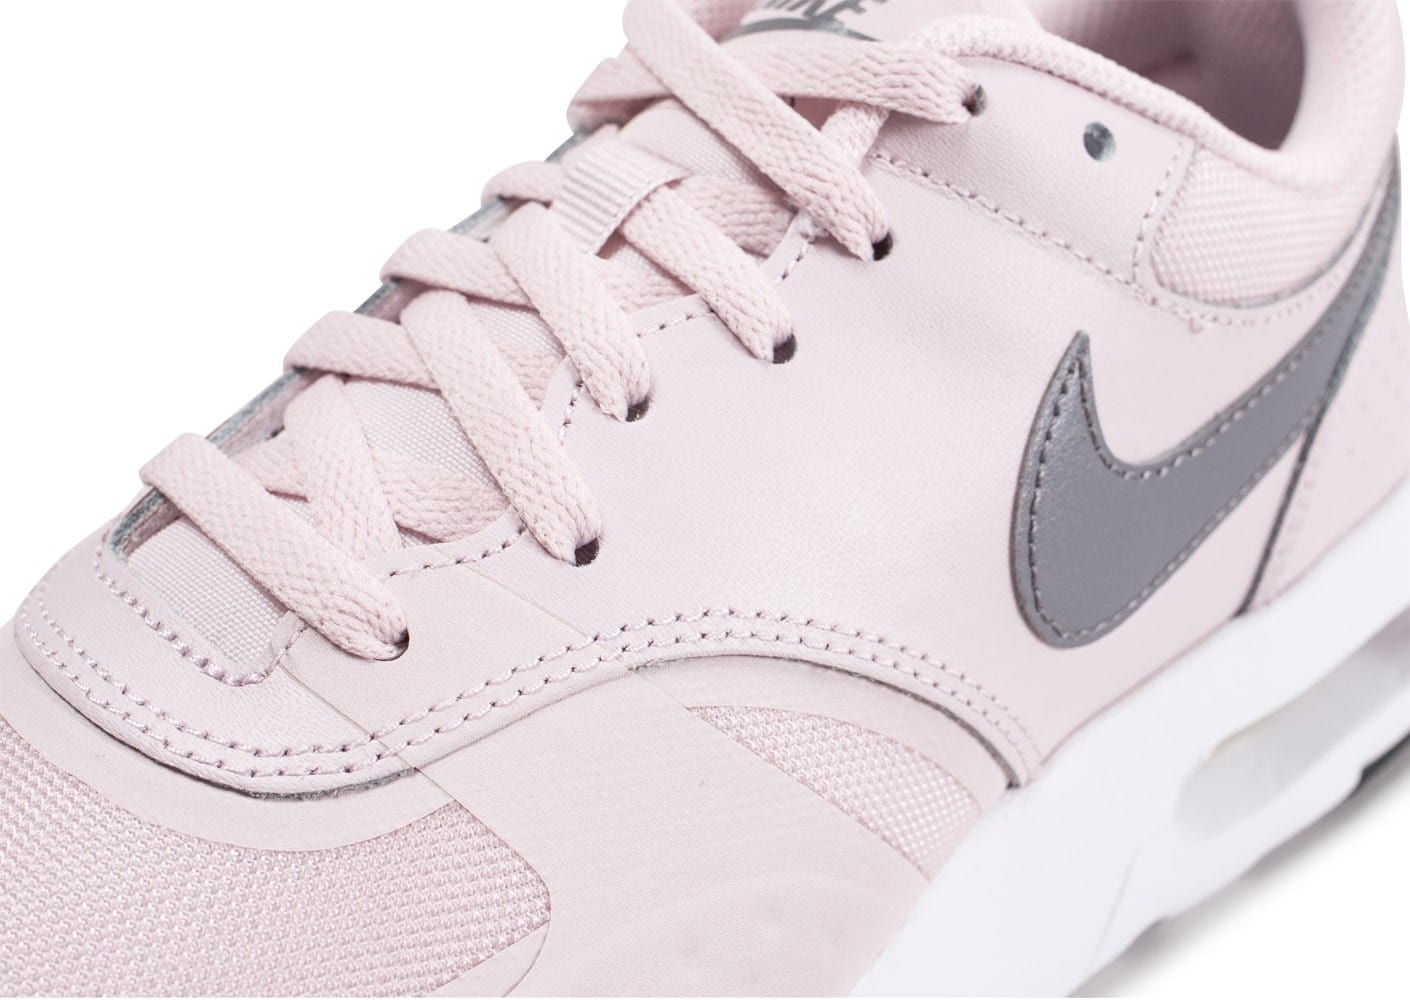 Air Rose Les Junior Max Nike Vision Toutes Et Blanche Chaussures 7f6mgIYbyv